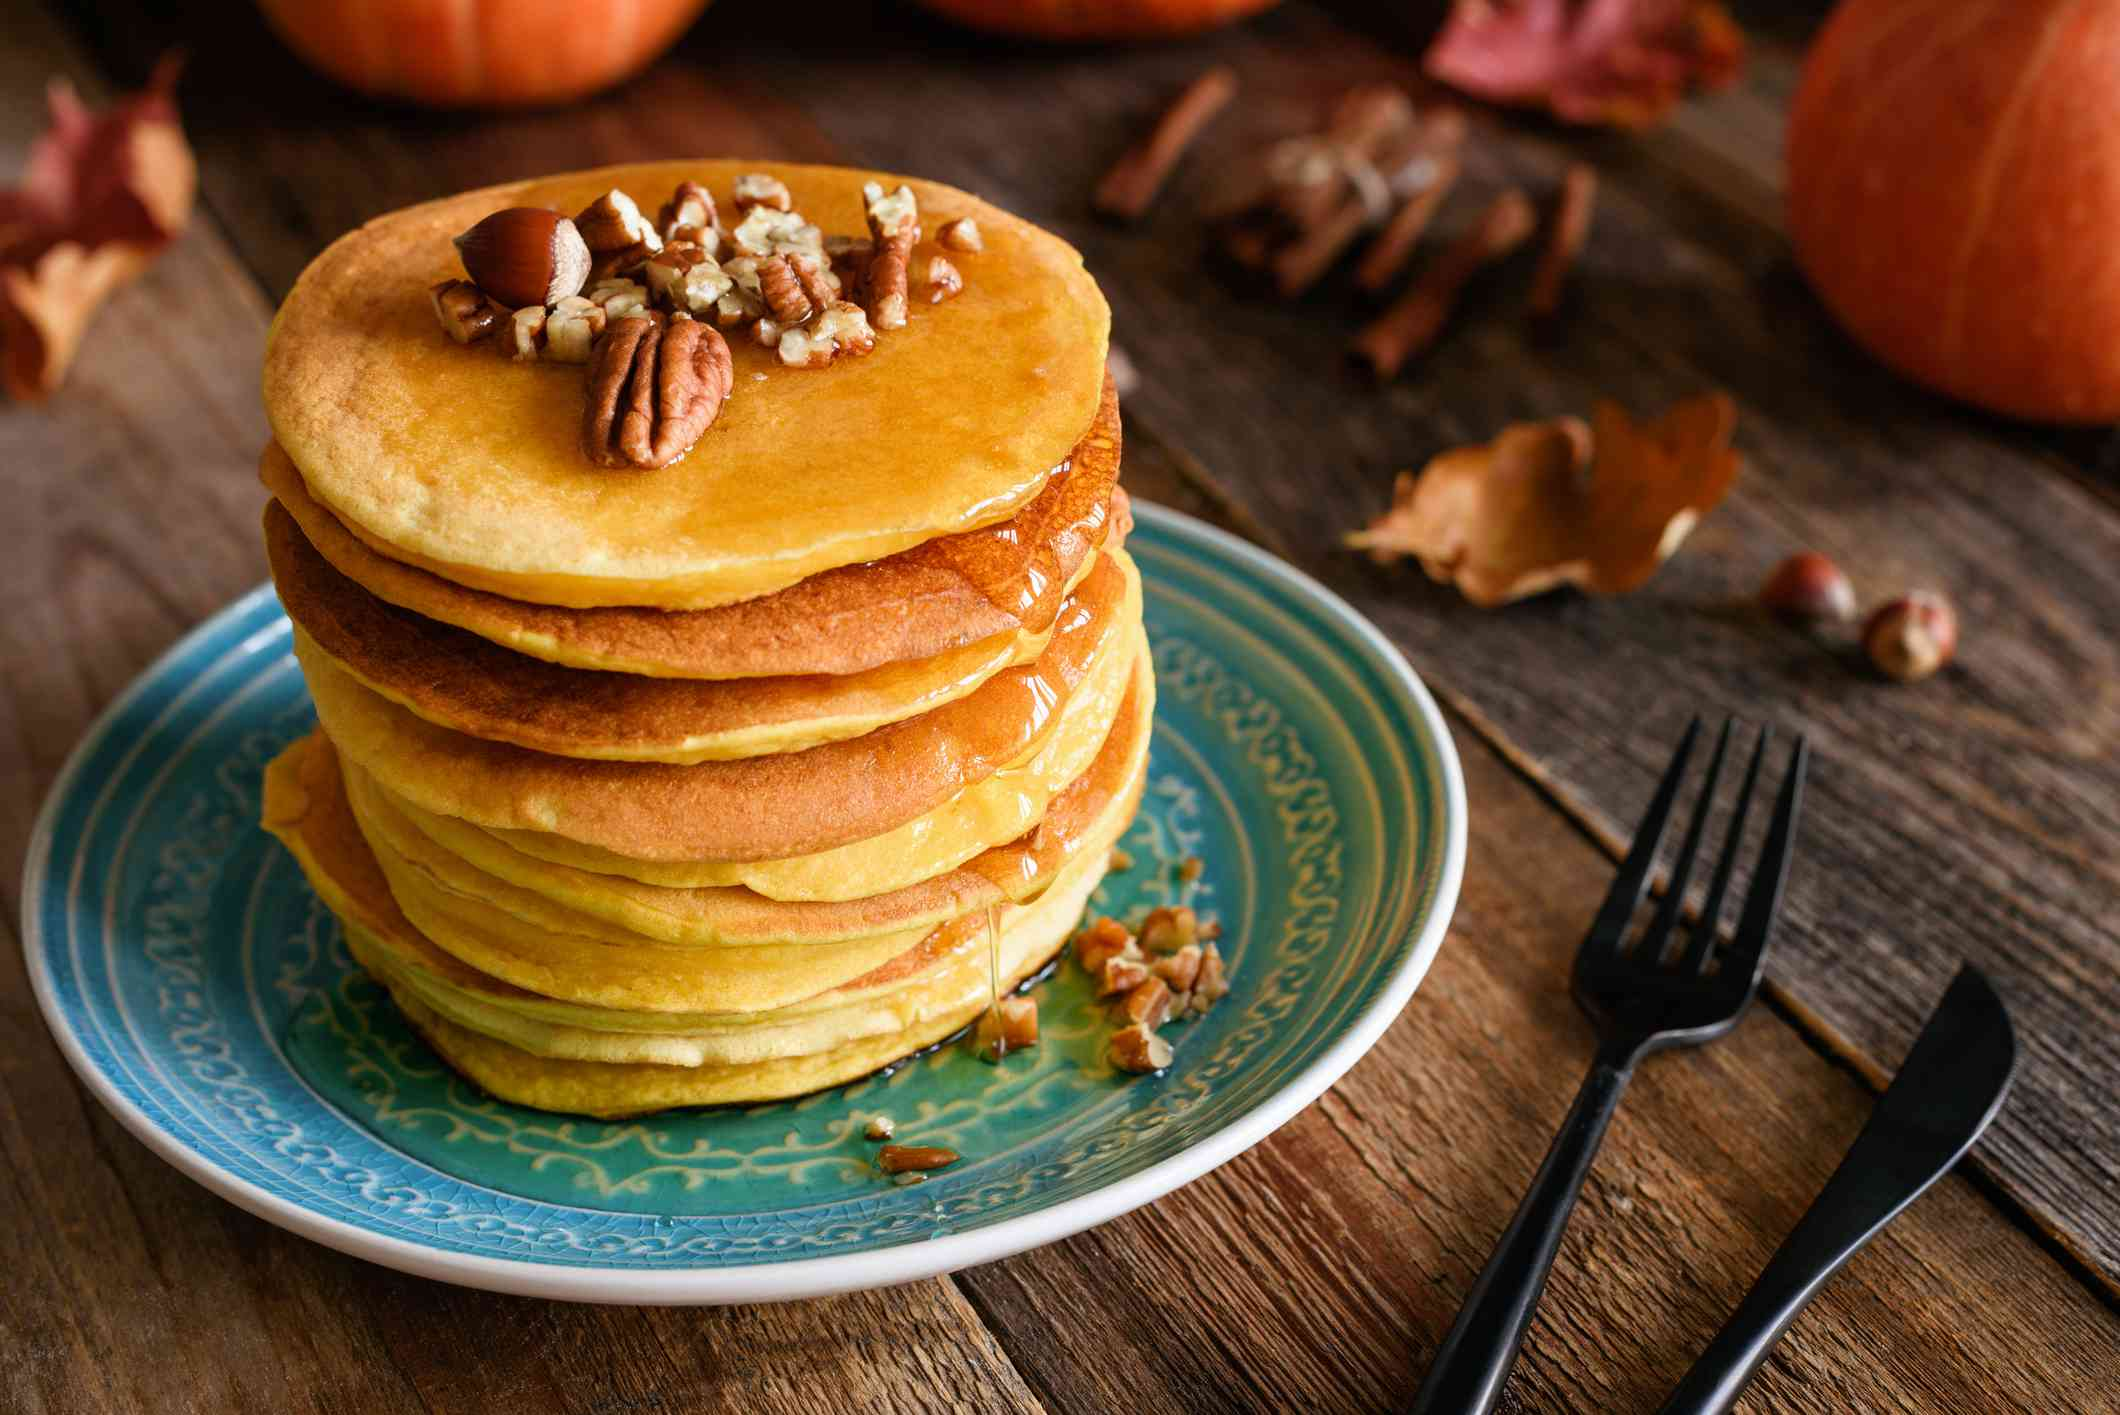 Stack of homemade pumpkin pancakes with pecan nuts on top. Wooden table background, black stylish cutlery.